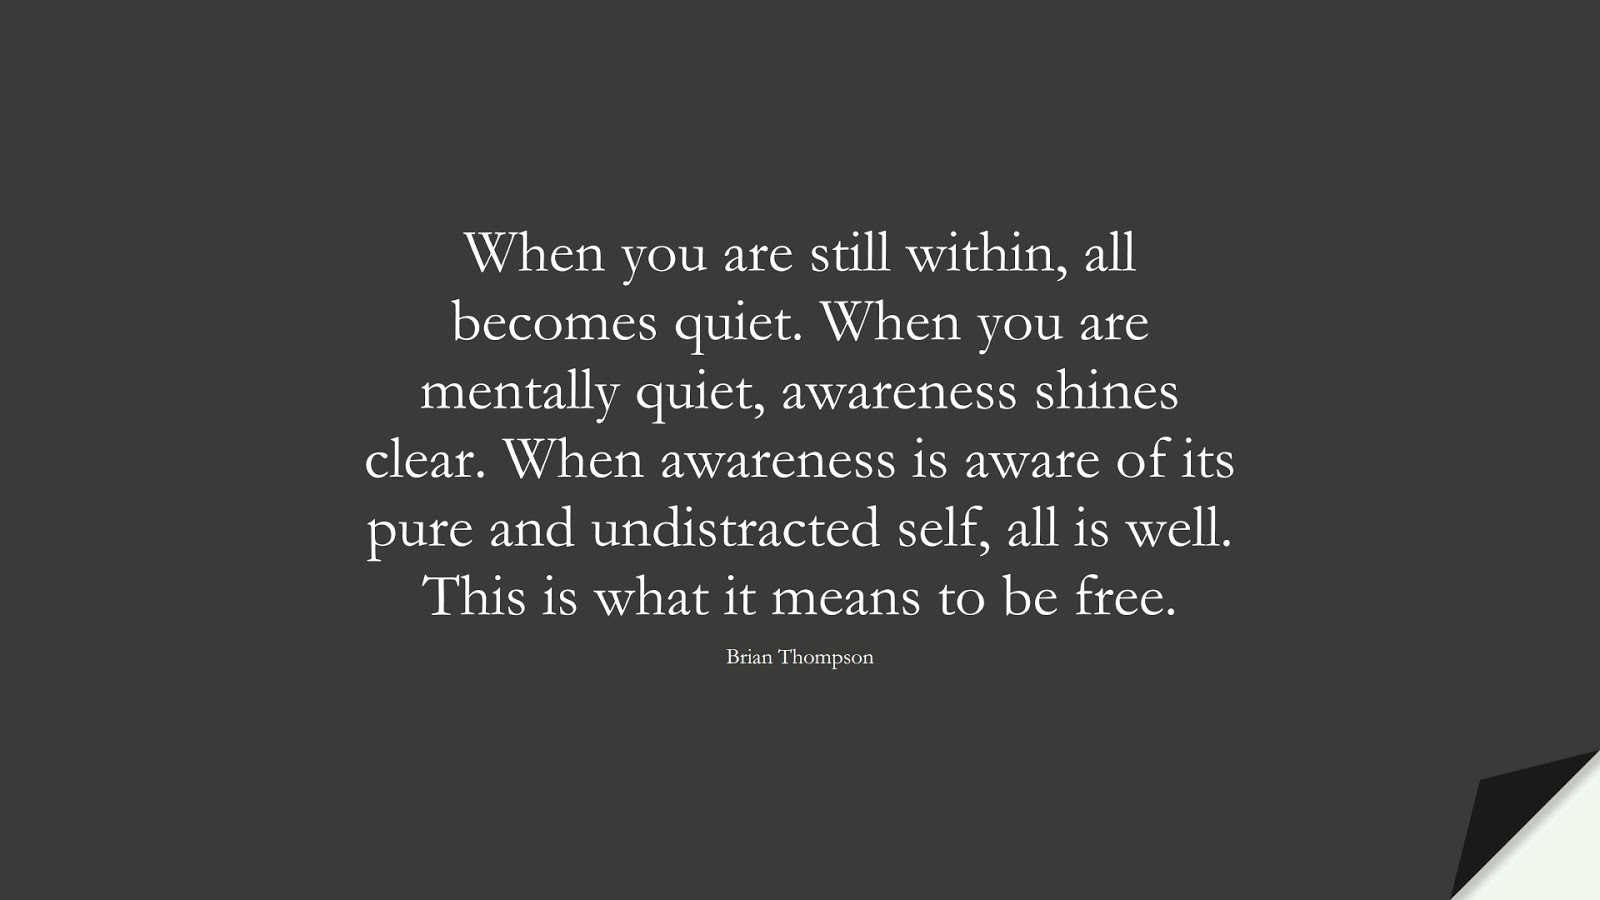 When you are still within, all becomes quiet. When you are mentally quiet, awareness shines clear. When awareness is aware of its pure and undistracted self, all is well. This is what it means to be free. (Brian Thompson);  #CalmQuotes